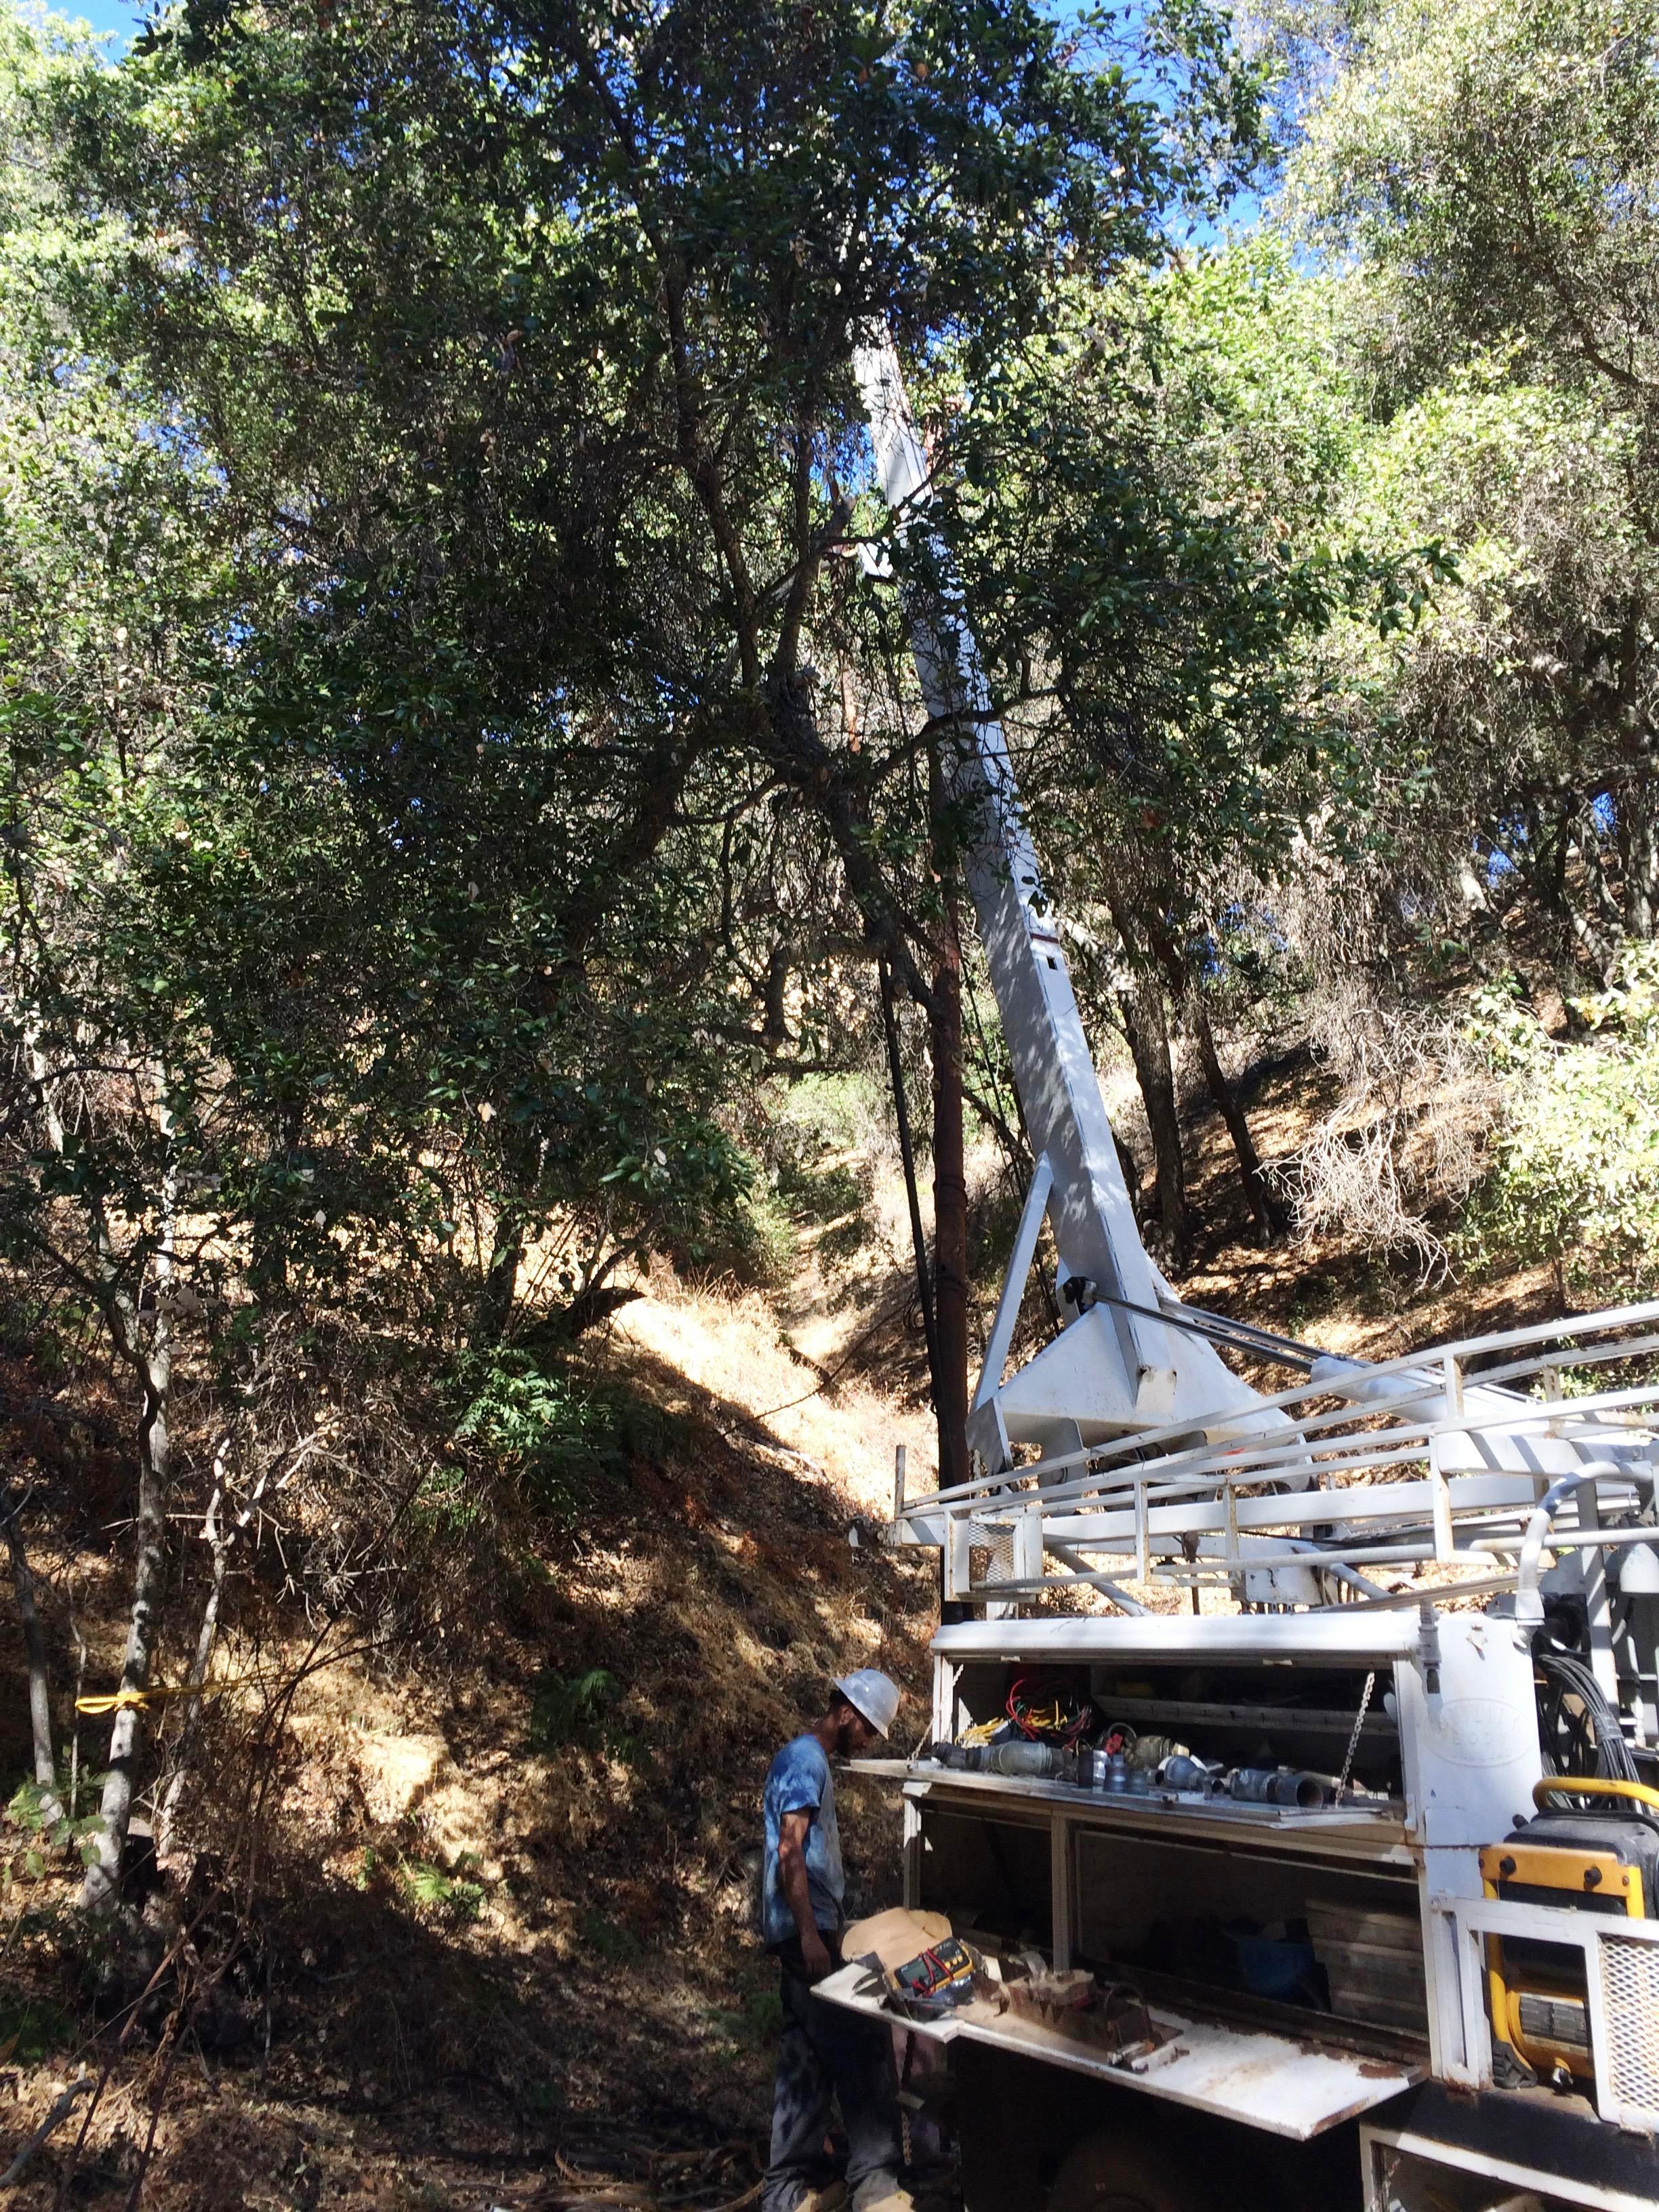 HANSEN WELL-DO SERVICE assessing the well and pump situation at the well head located in a ravine at Meher Mount. (Photo: Buzz Glasky, 2016)